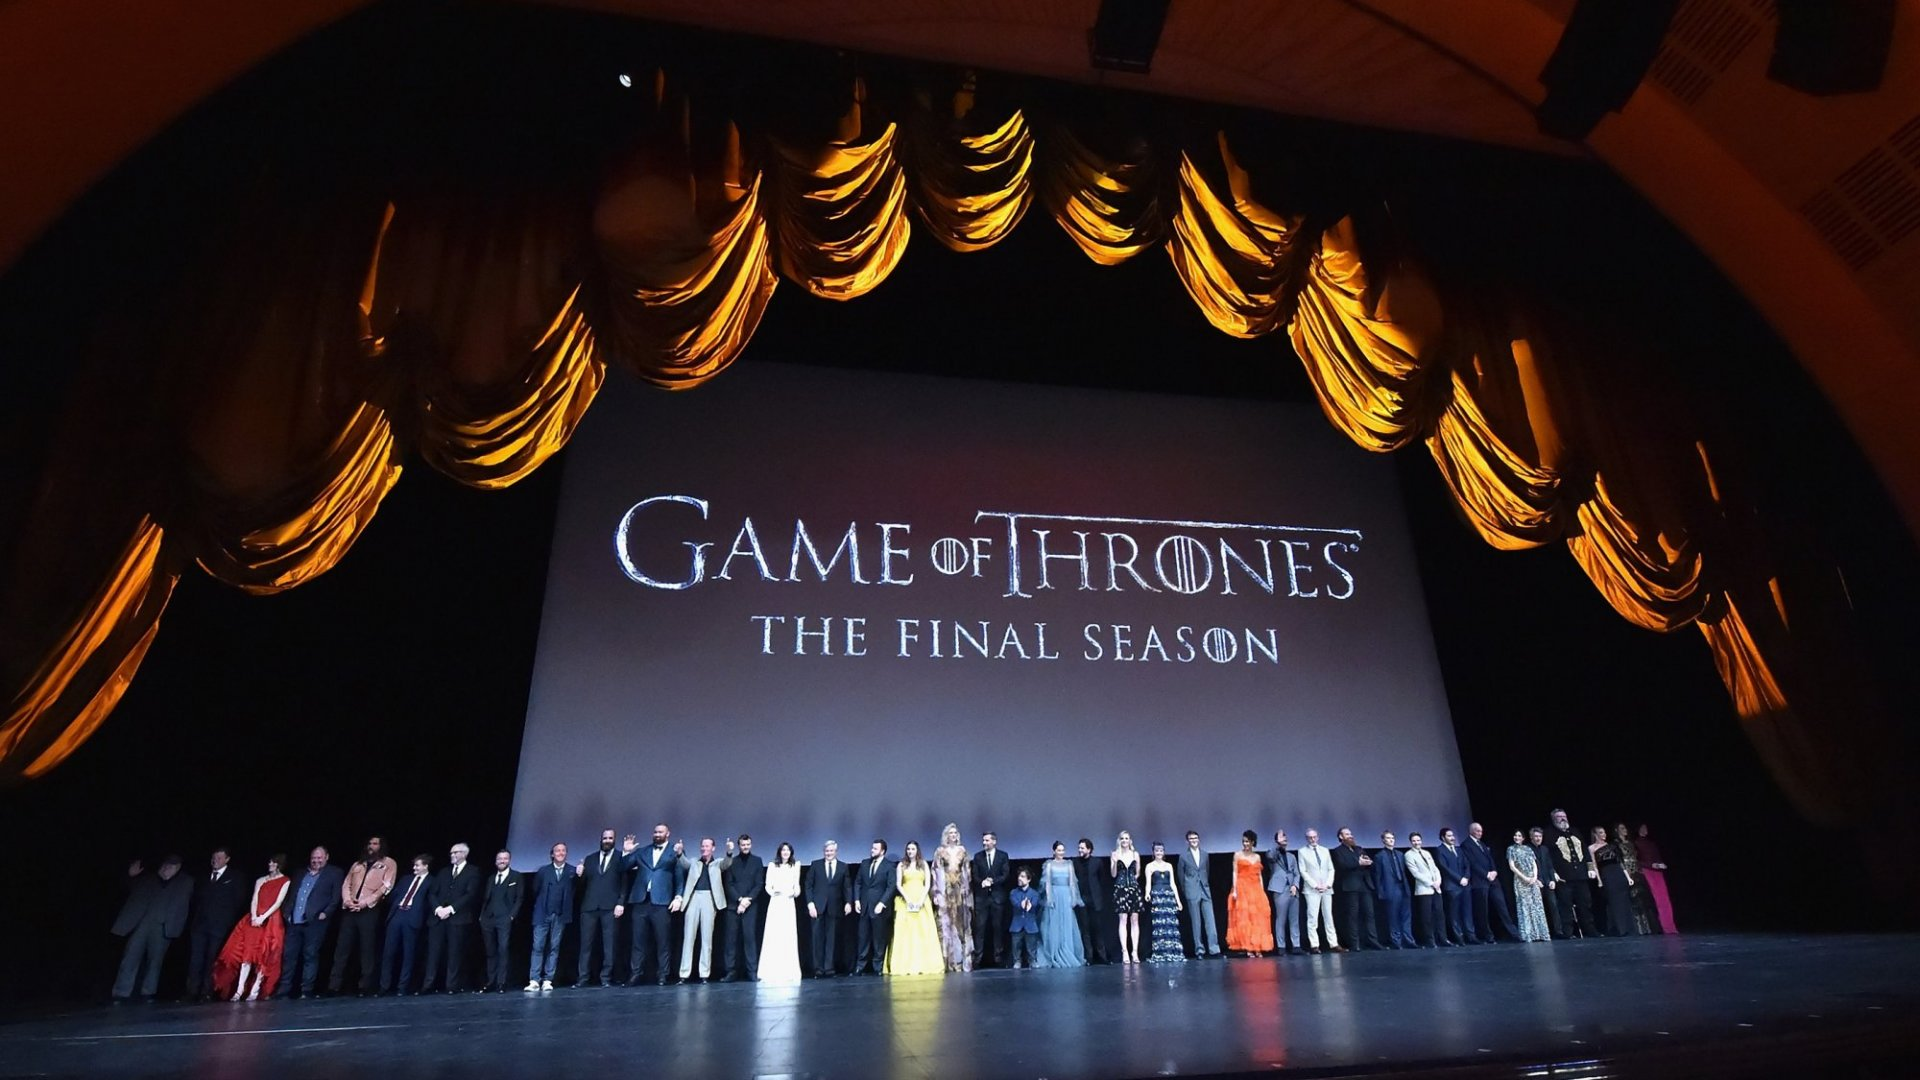 This 3 Word Economic Theory Explains Why 17.4 Million People Are Addicted to Game of Thrones